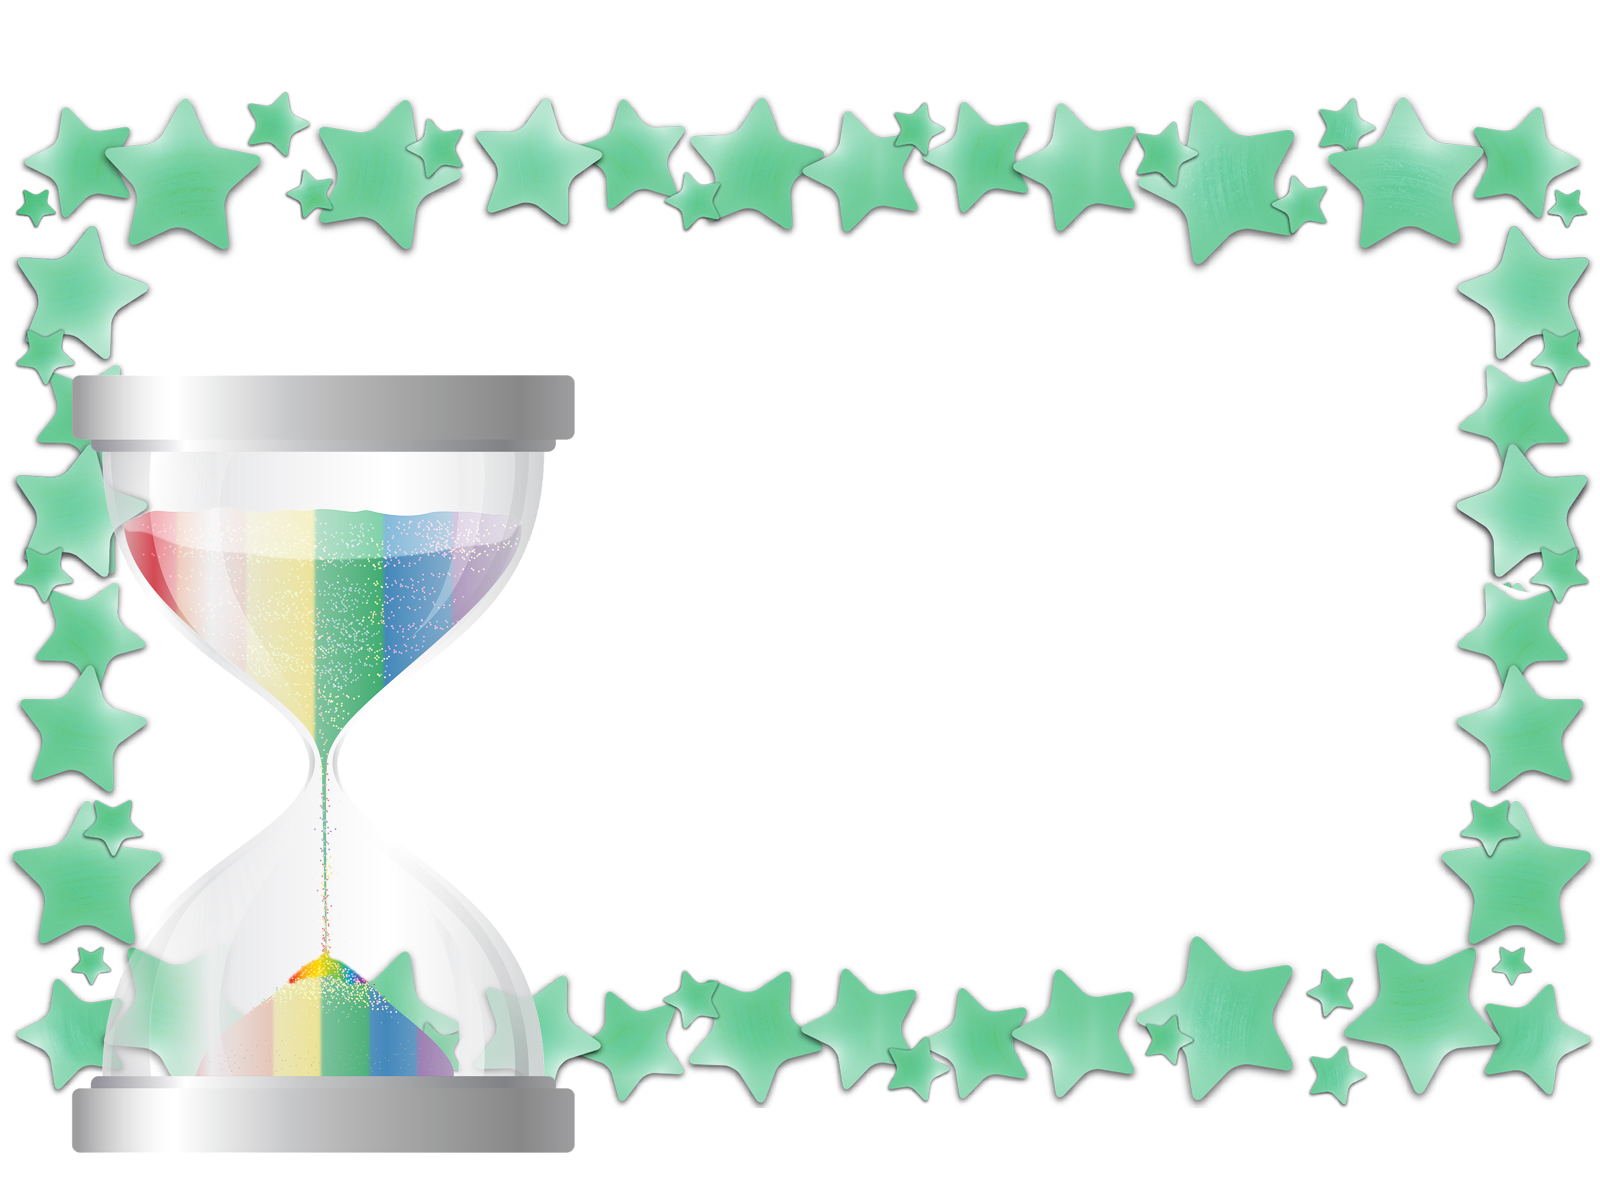 Hour Glass Star PPT Backgrounds